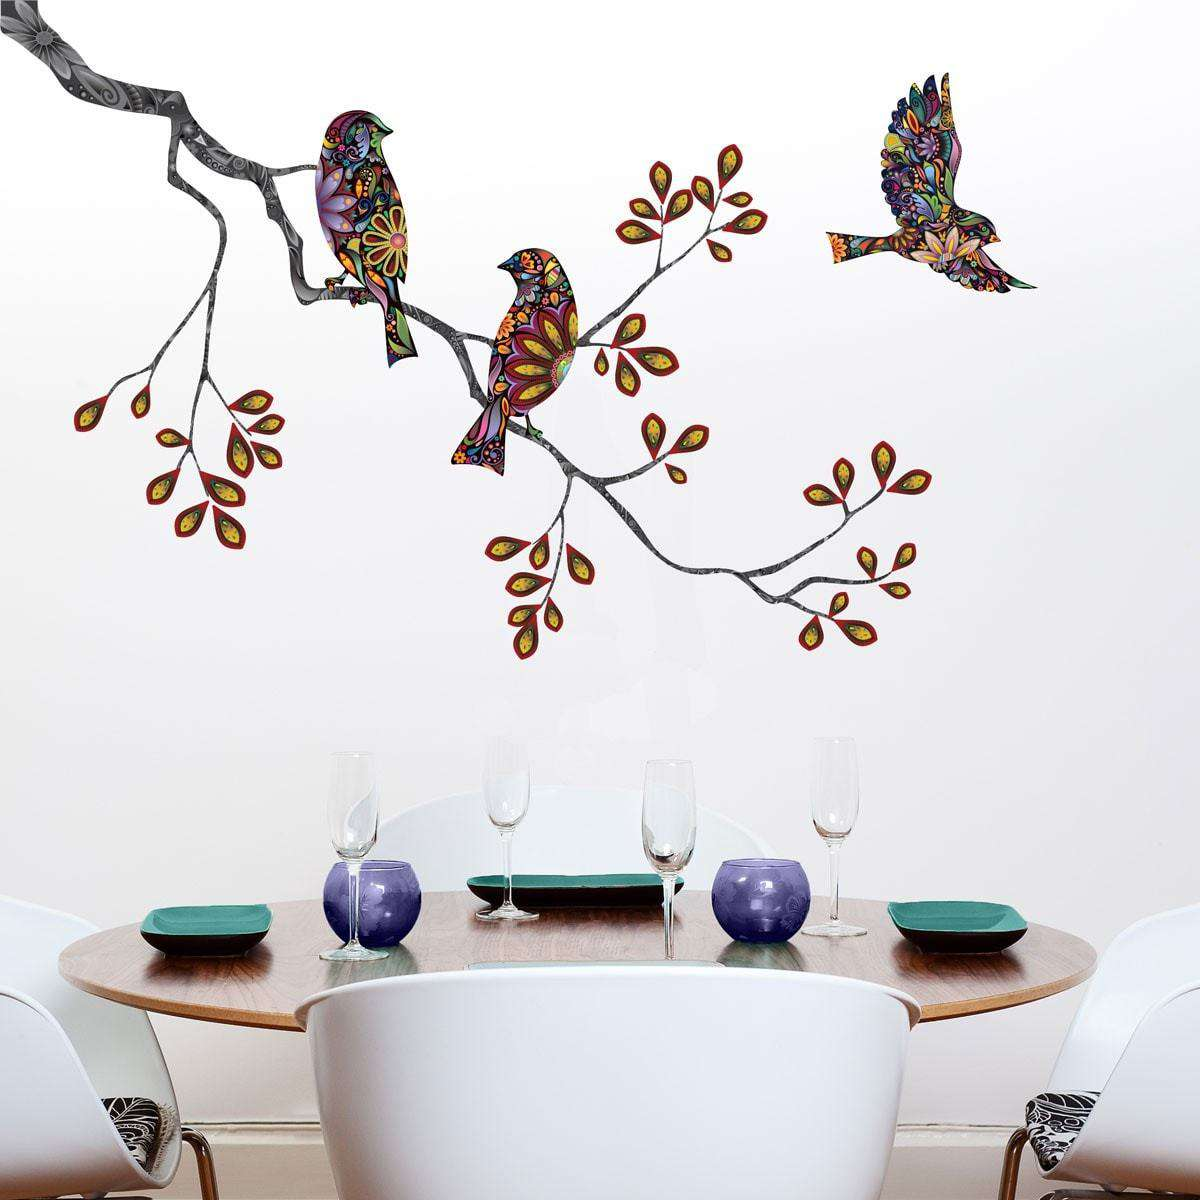 Animal stencils stickers and coordinating home decor for children birds and tree branch wall sticker decal amipublicfo Images